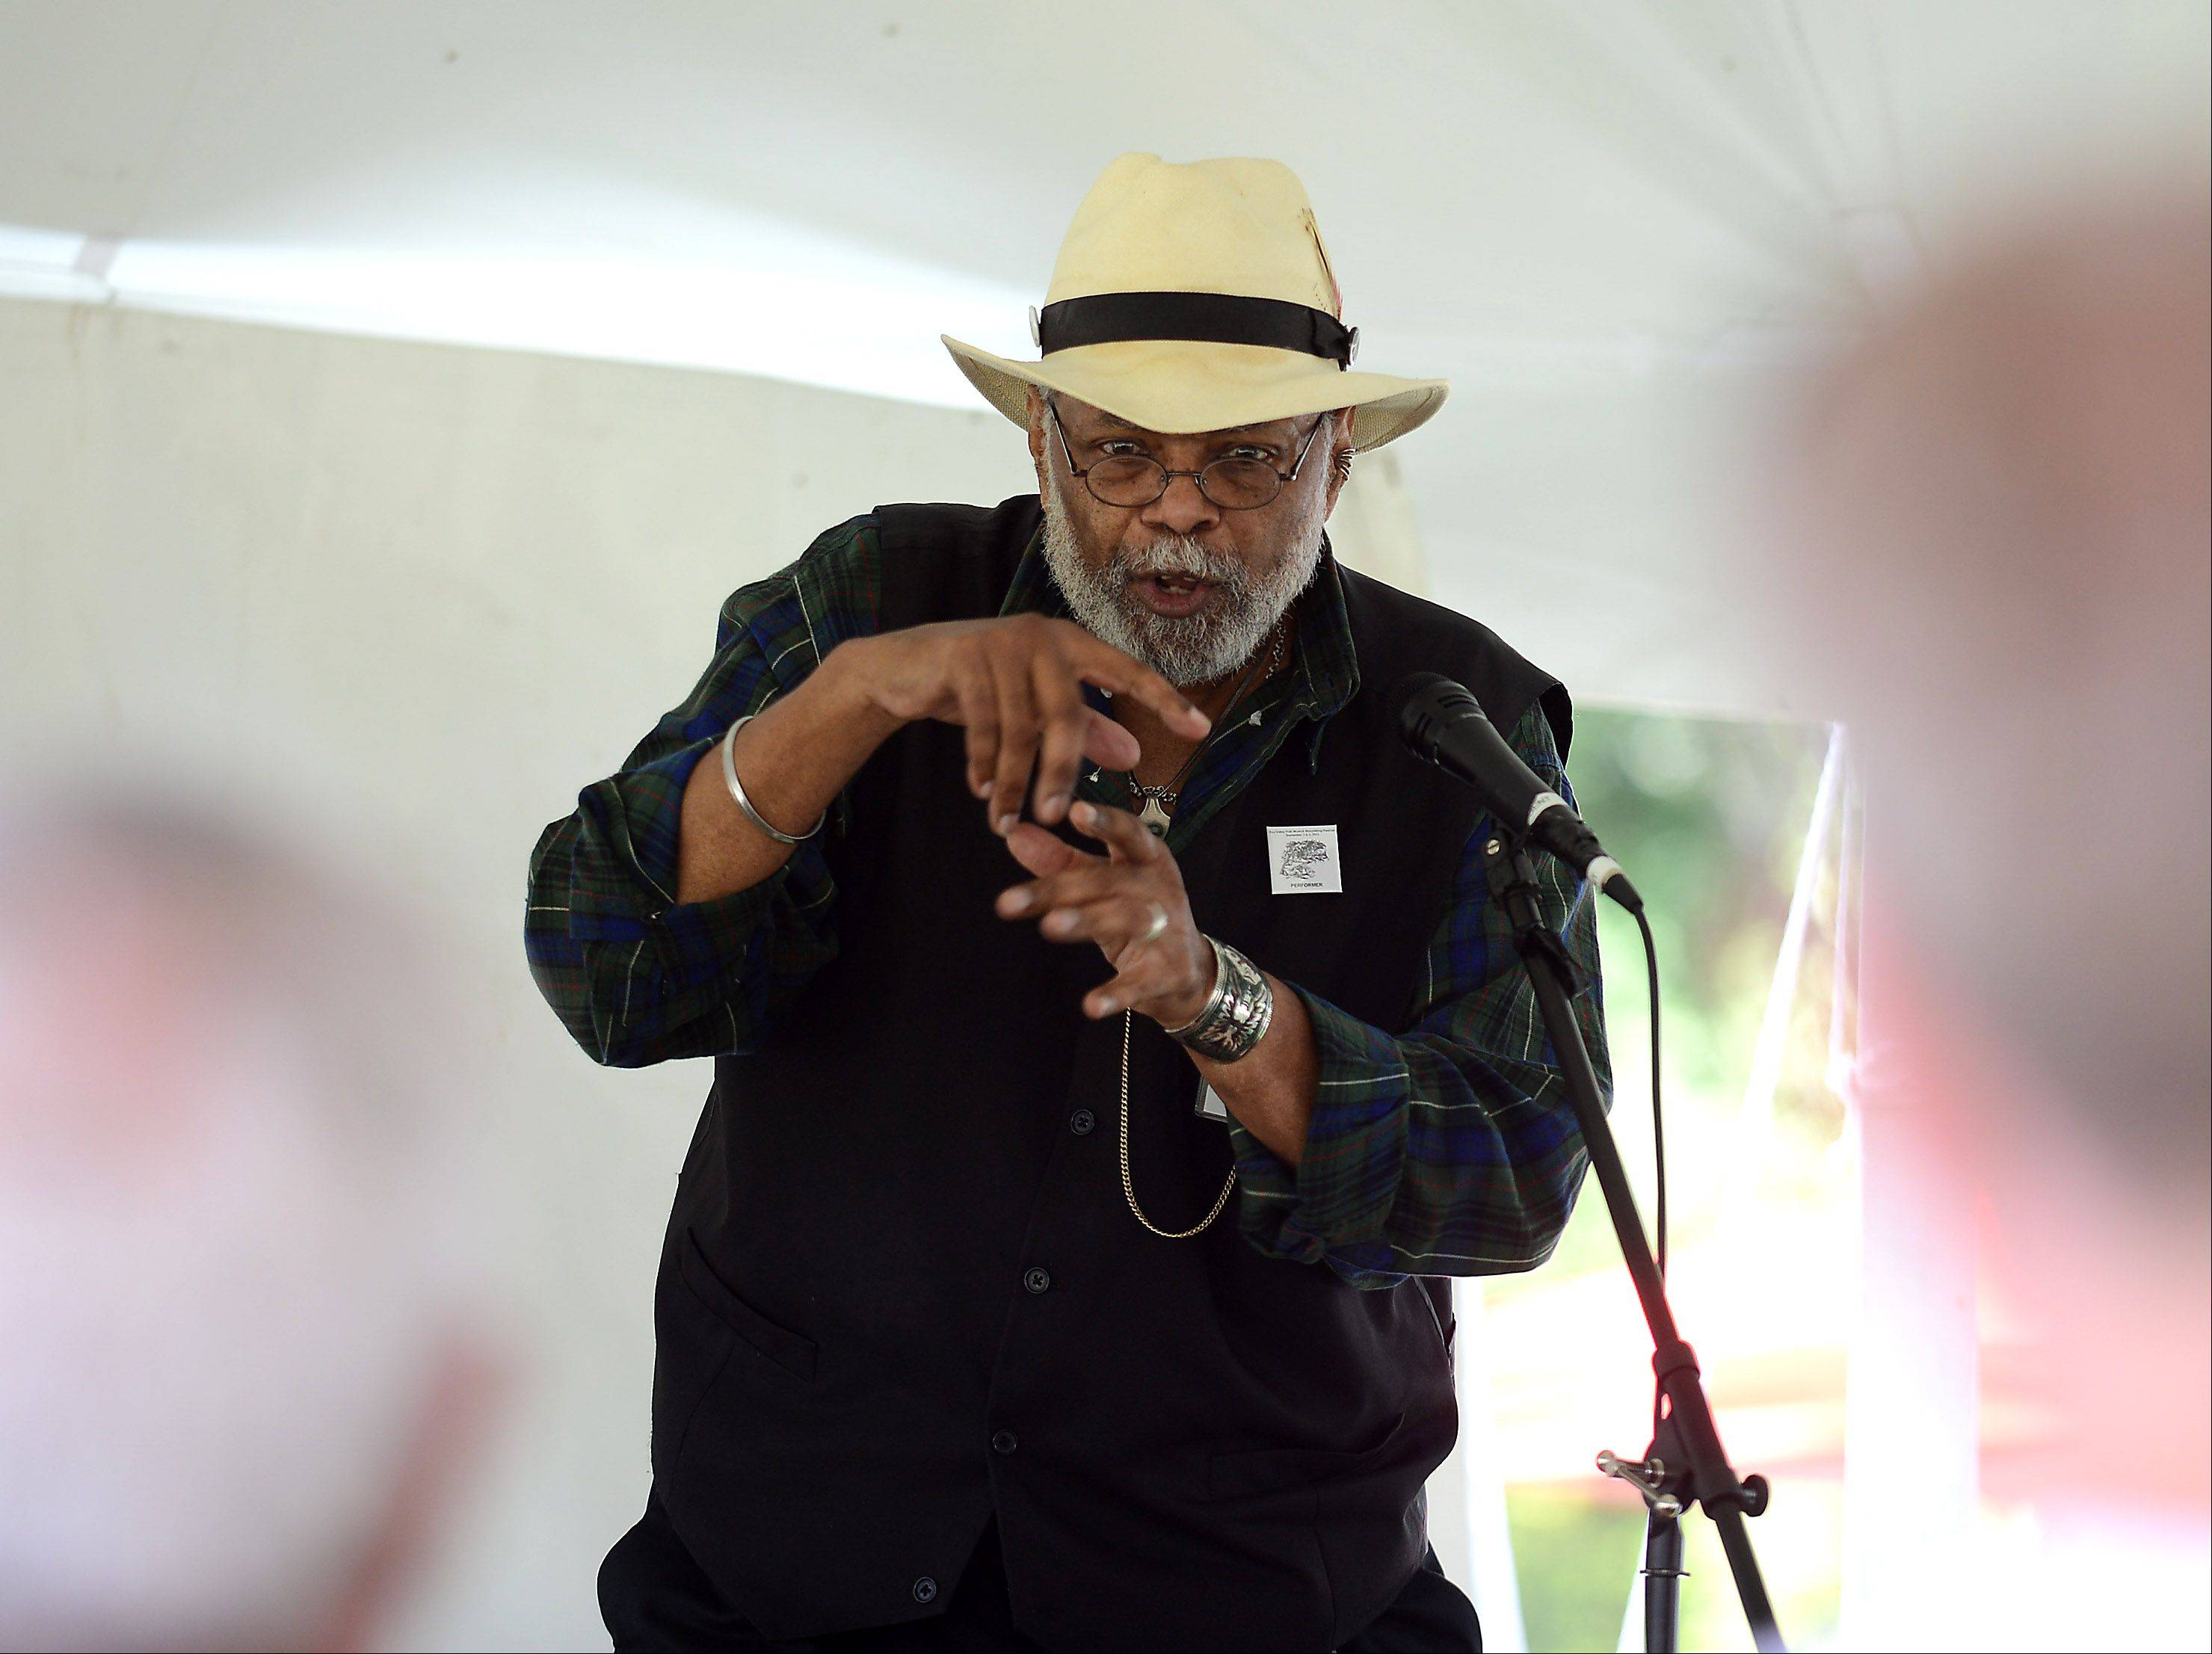 Sparky Rucker of Maryville, TN weaves a tale about a man who killed the devil for the crowd at the storytelling tent during the 37th annual Fox Valley Folk Music and Storytelling Festival at Island Park in Geneva Monday.